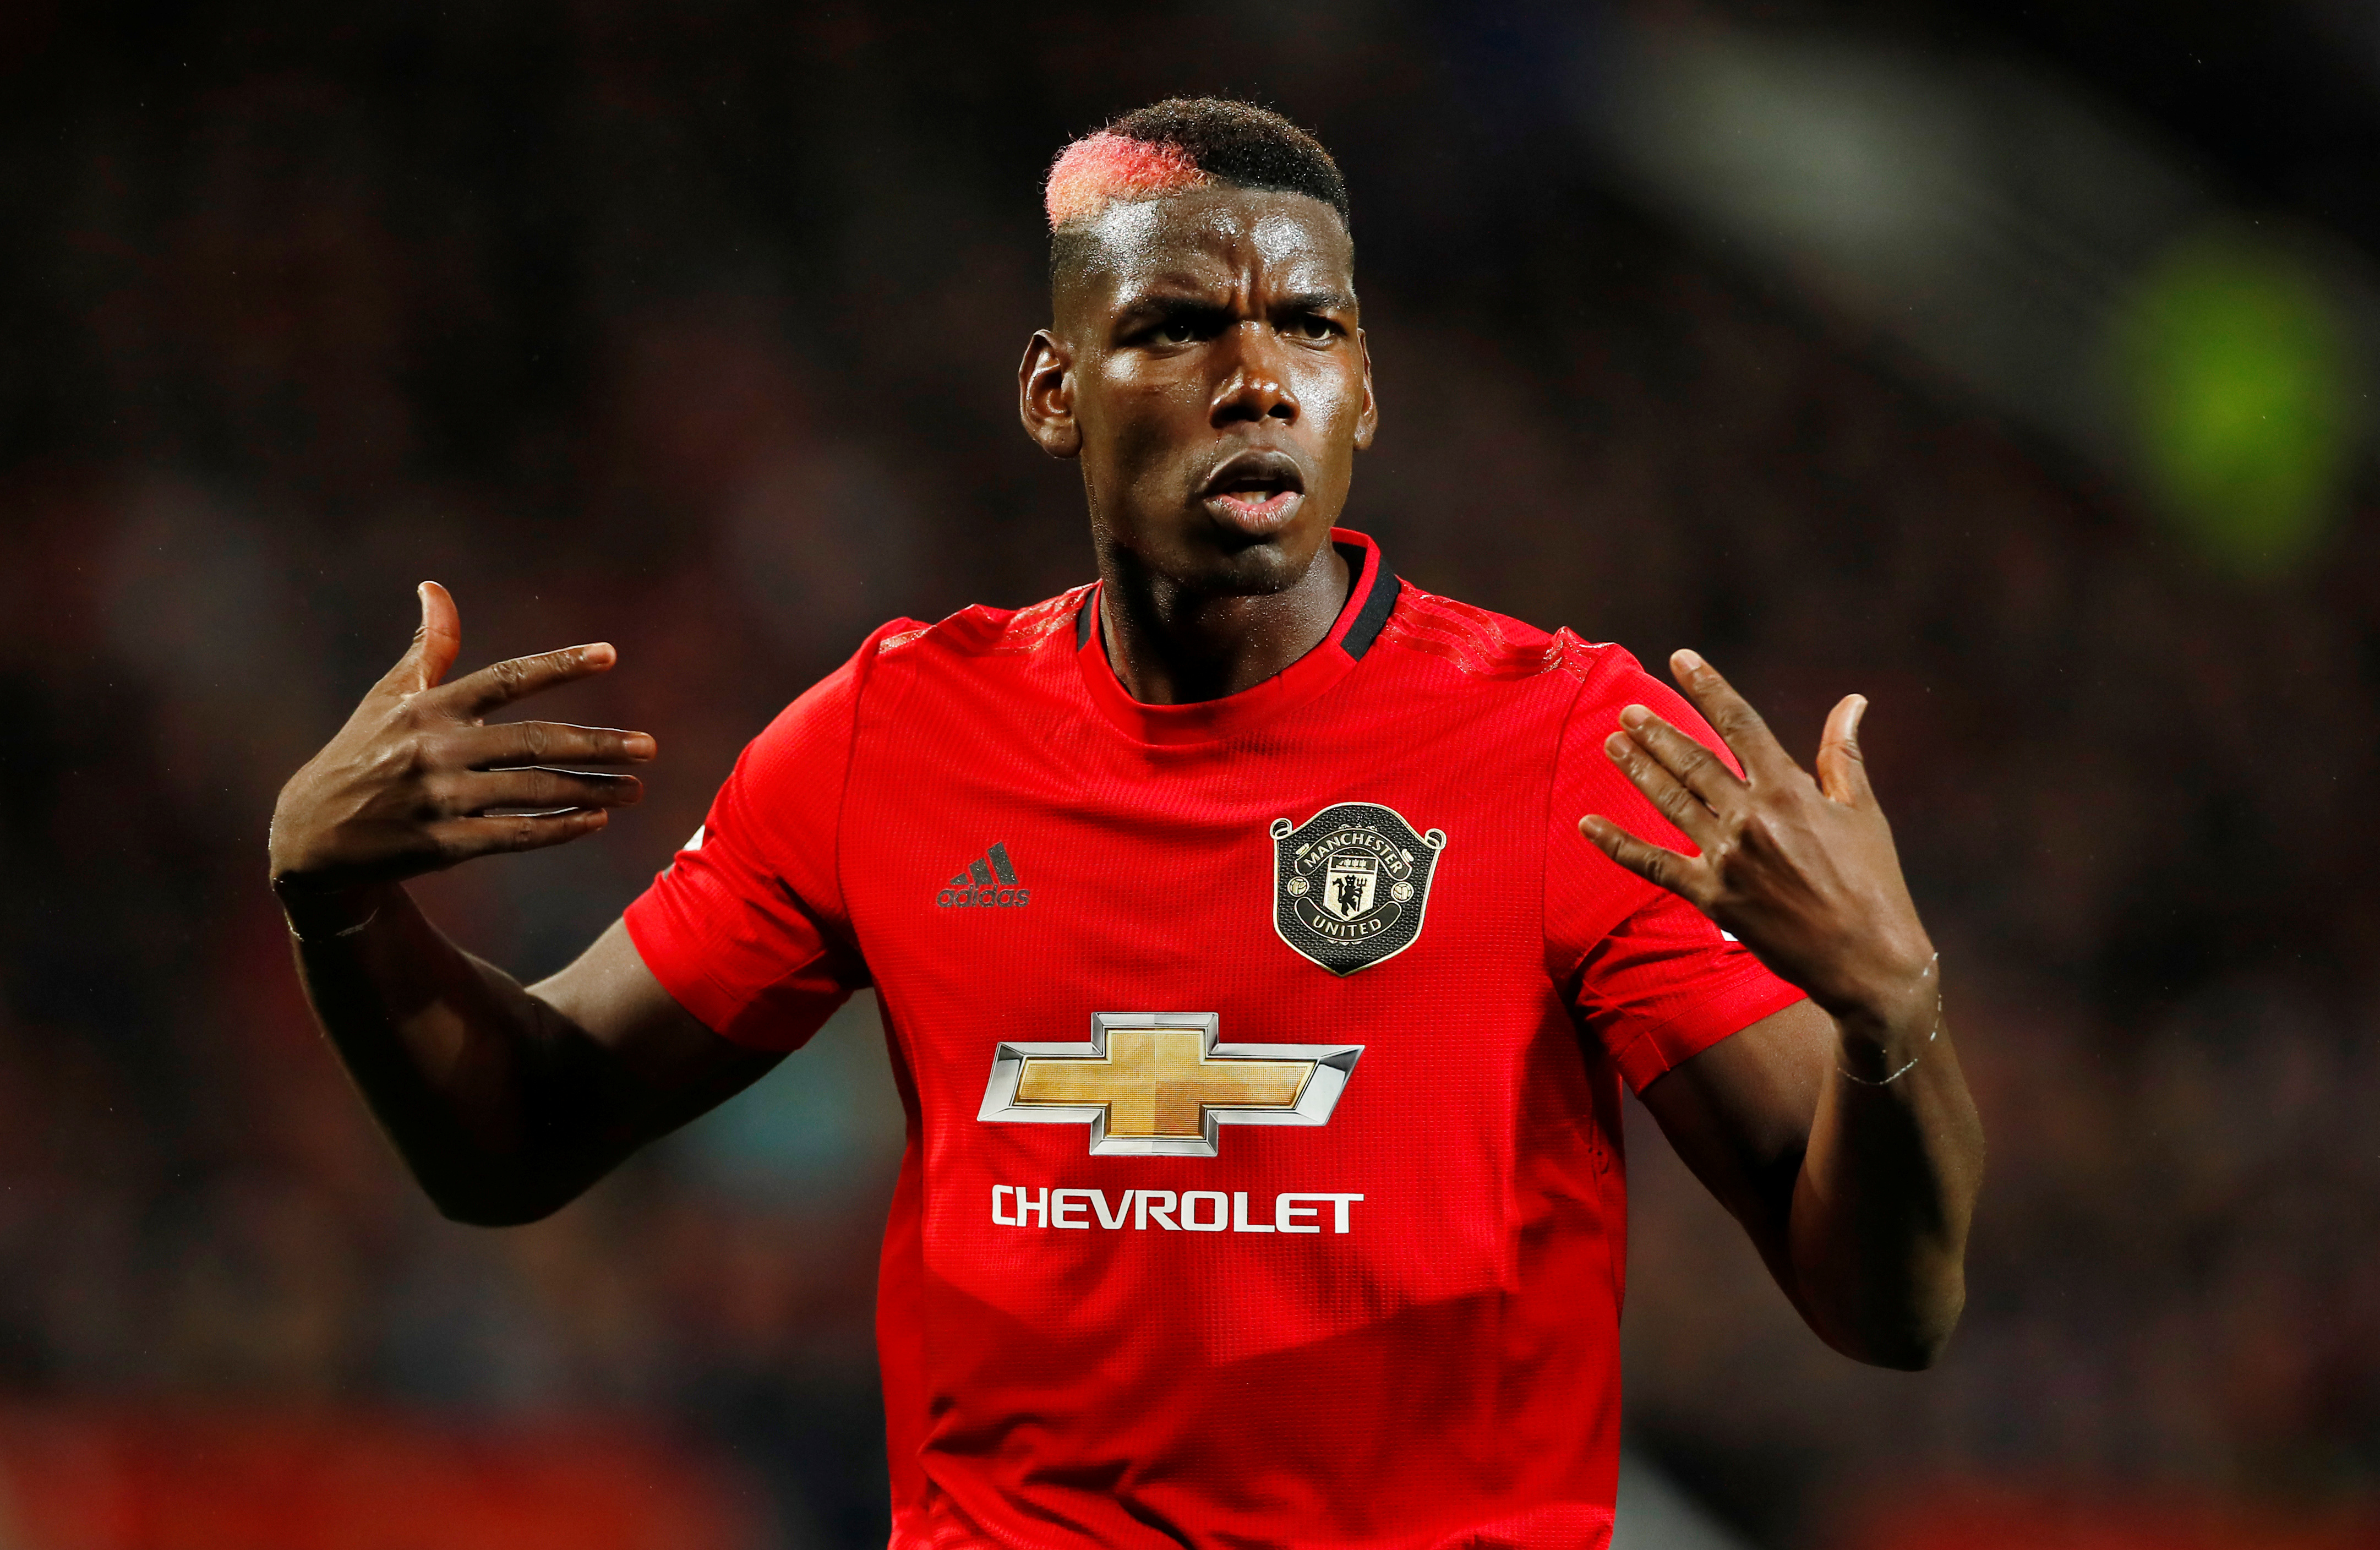 Manchester United set to lose Chevrolet as main shirt sponsor